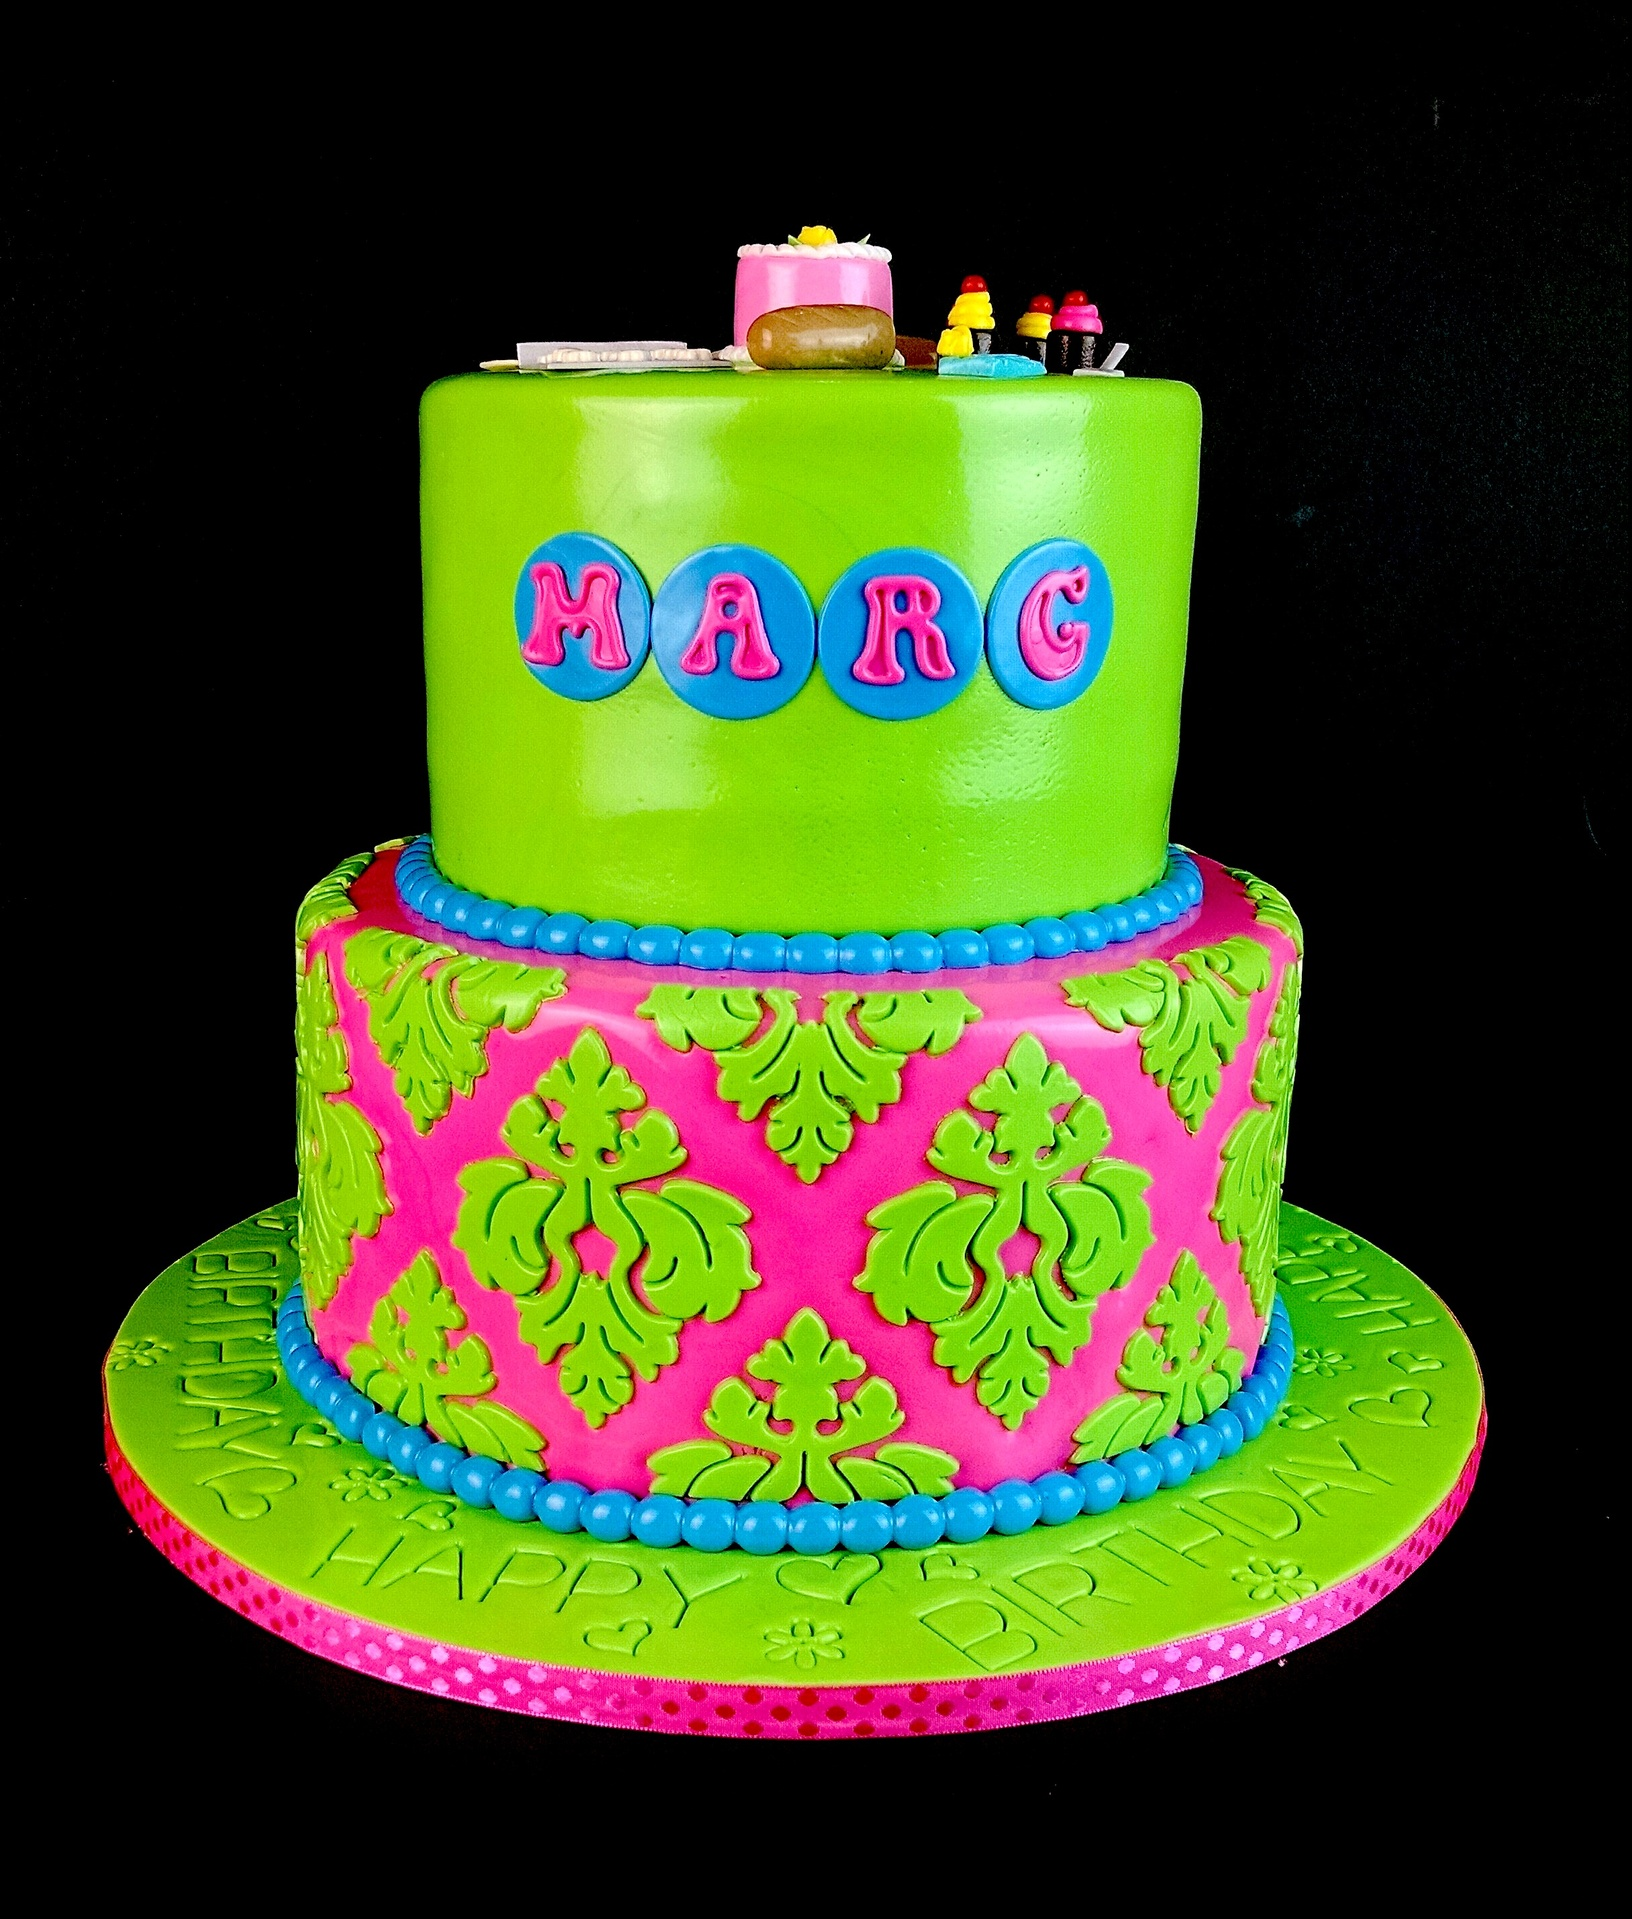 Marg's Baking Themed Cake